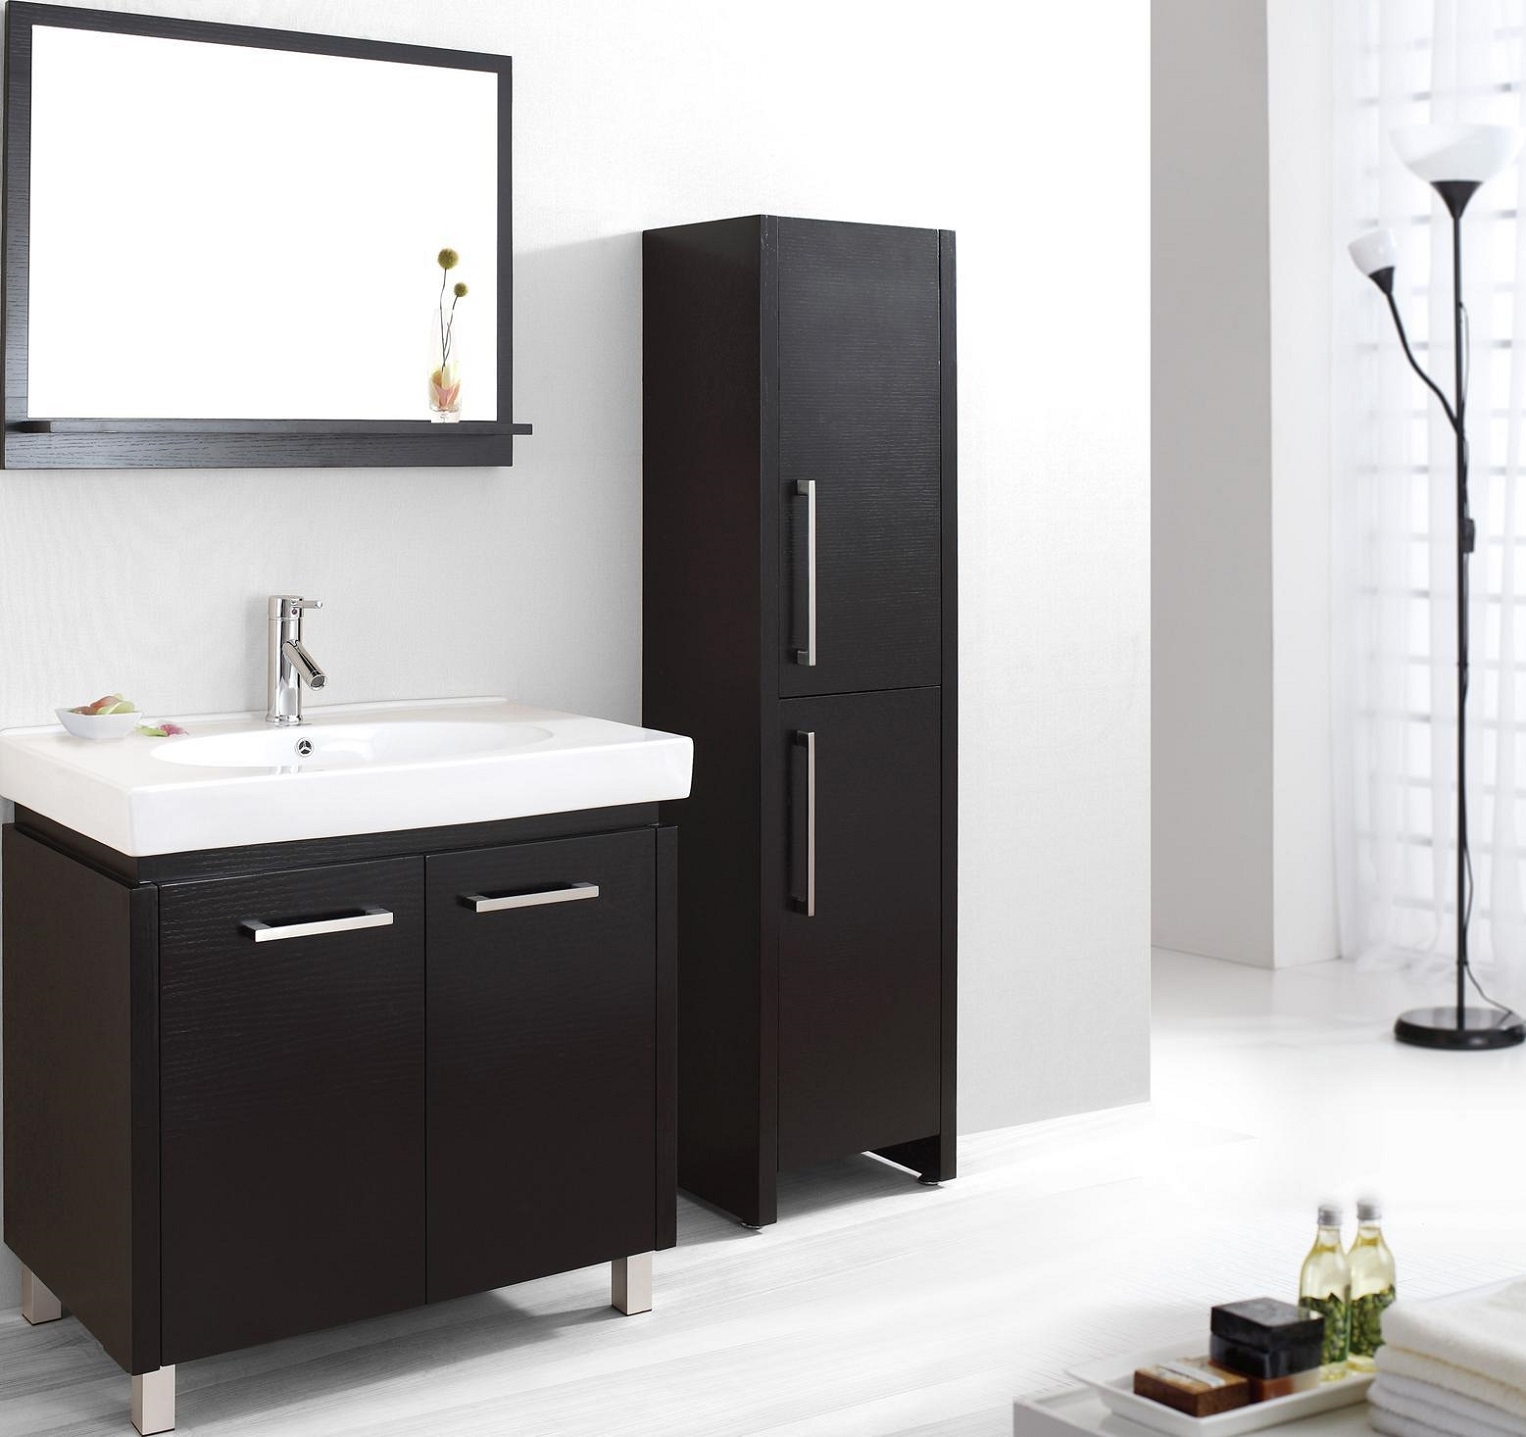 Black Bathroom Cabinets And Storage Units